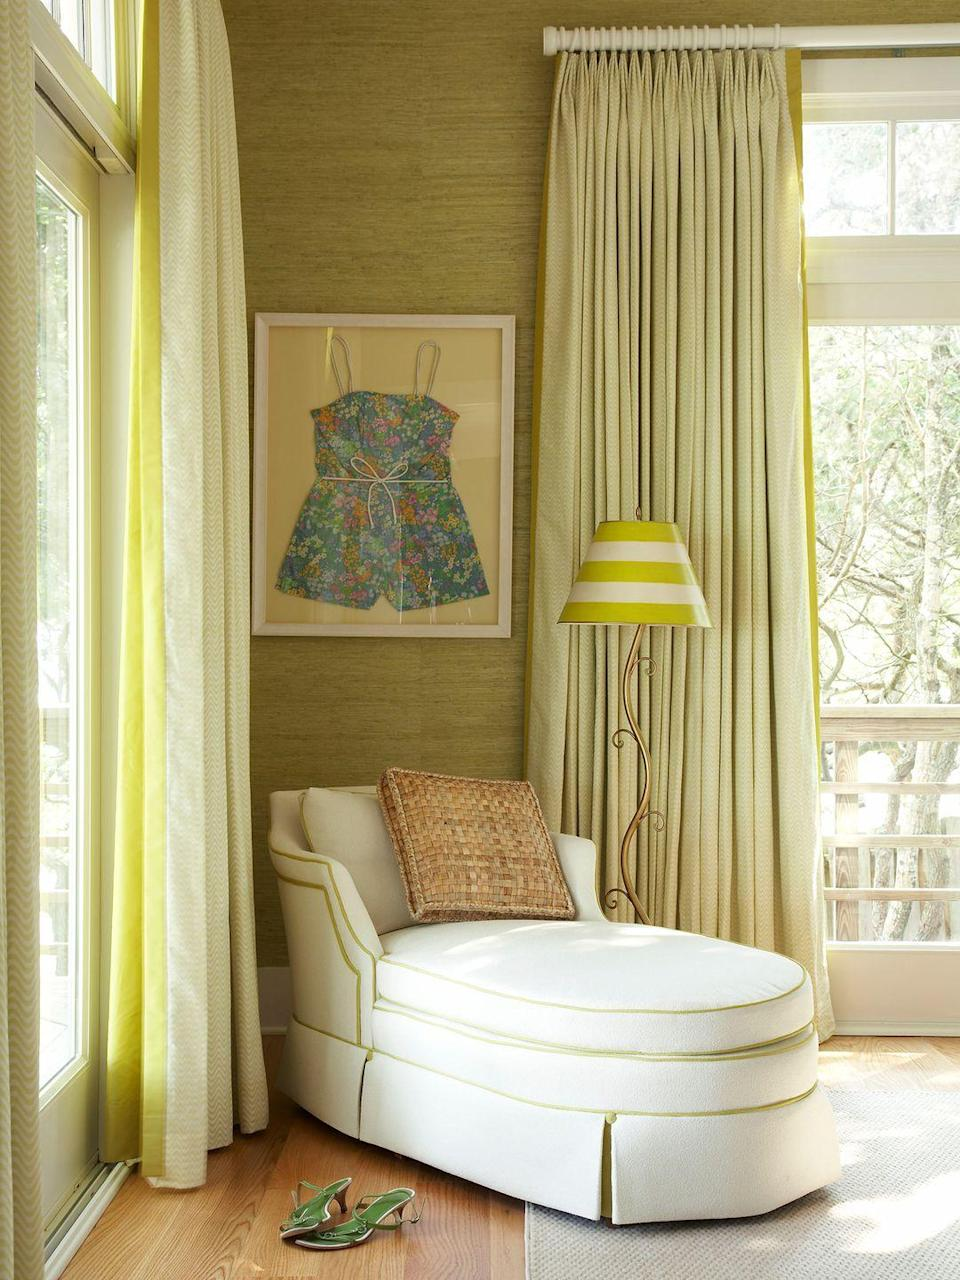 <p>Sometimes, all it takes is an unexpected color palette to breathe life into a space. Here, chartreuse in varied tones pulls this reading nook together. </p>